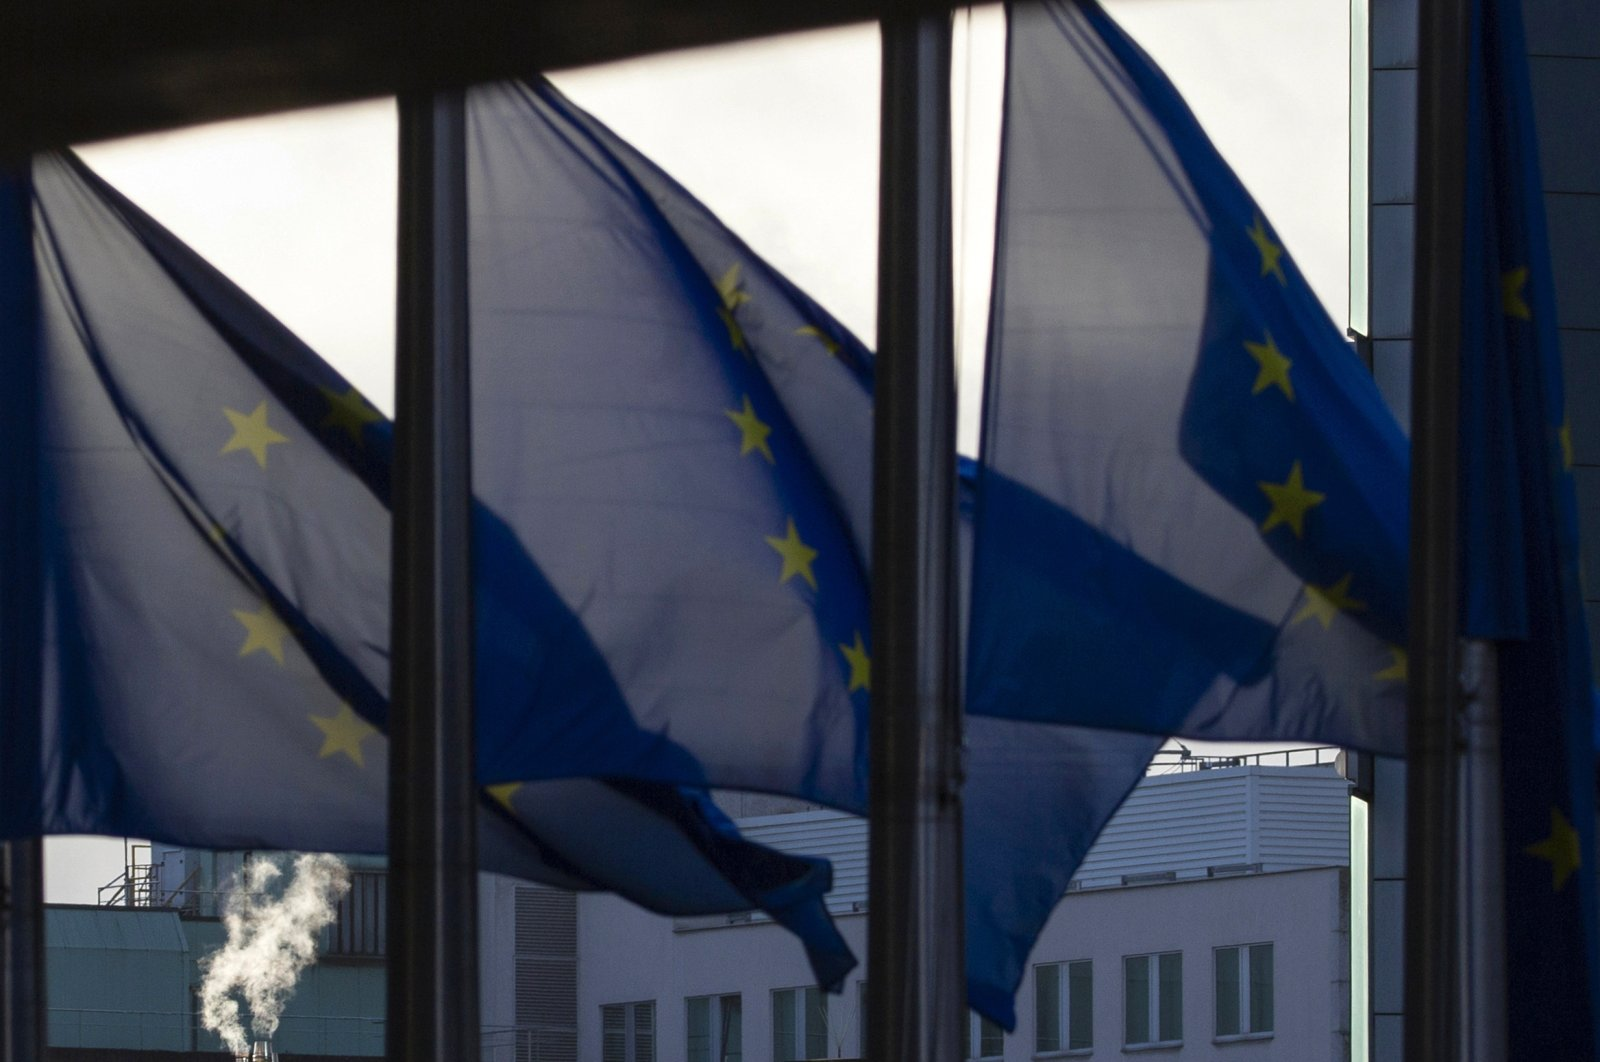 Smoke rises from a chimney behind EU flags fluttering in the wind outside EU headquarters in Brussels, Dec. 24, 2020. (AP Photo)